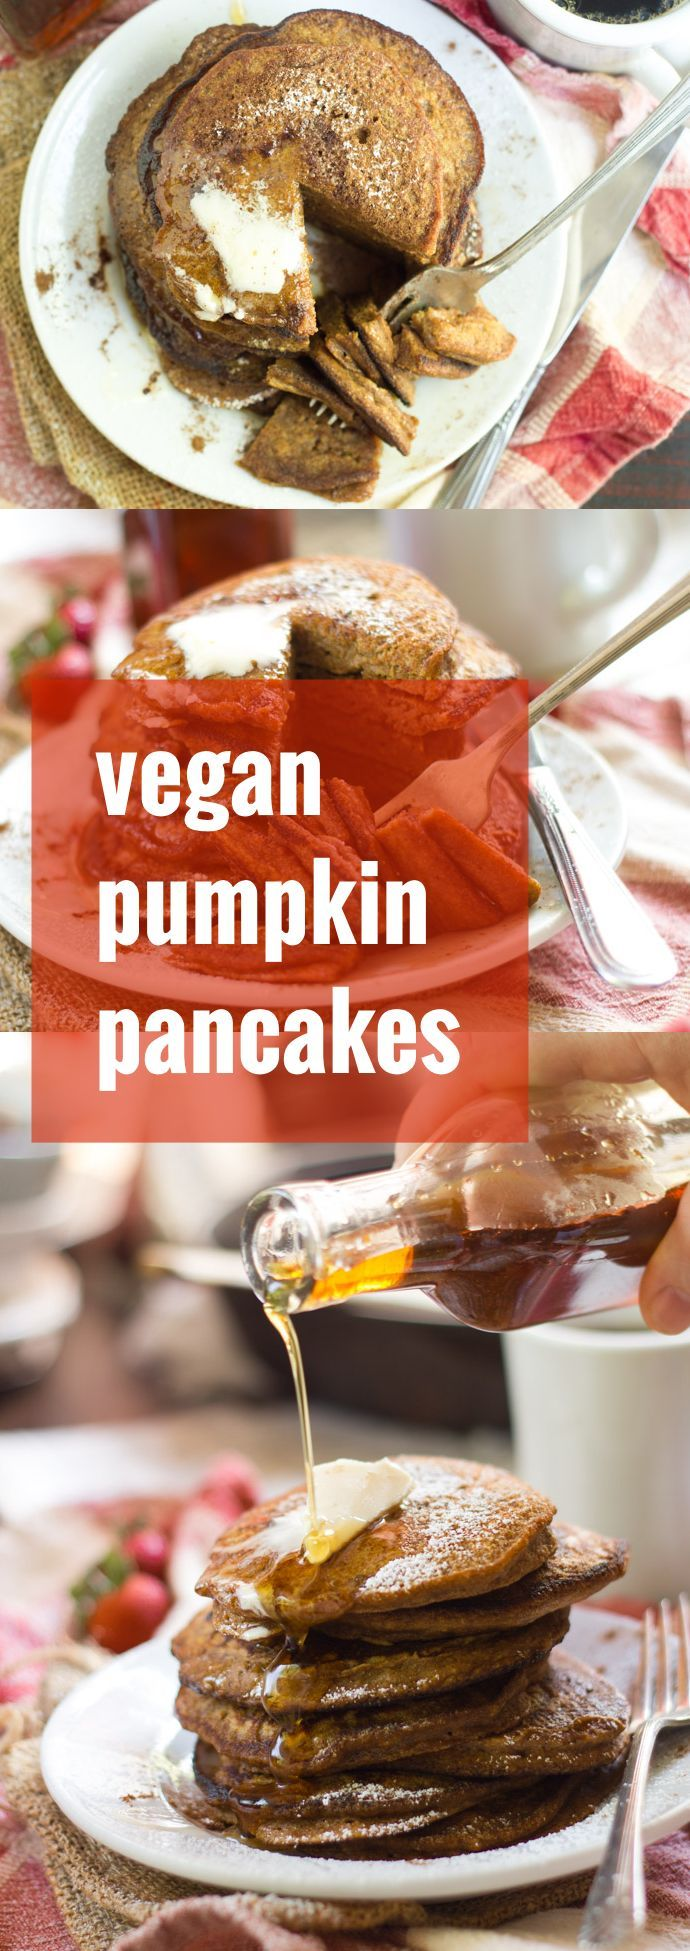 Celebrate fall (or any time, for that matter!) by breakfasting on a maple syrup-drenched stack of these moist, fluffy and spice-infused vegan pumpkin pancakes.